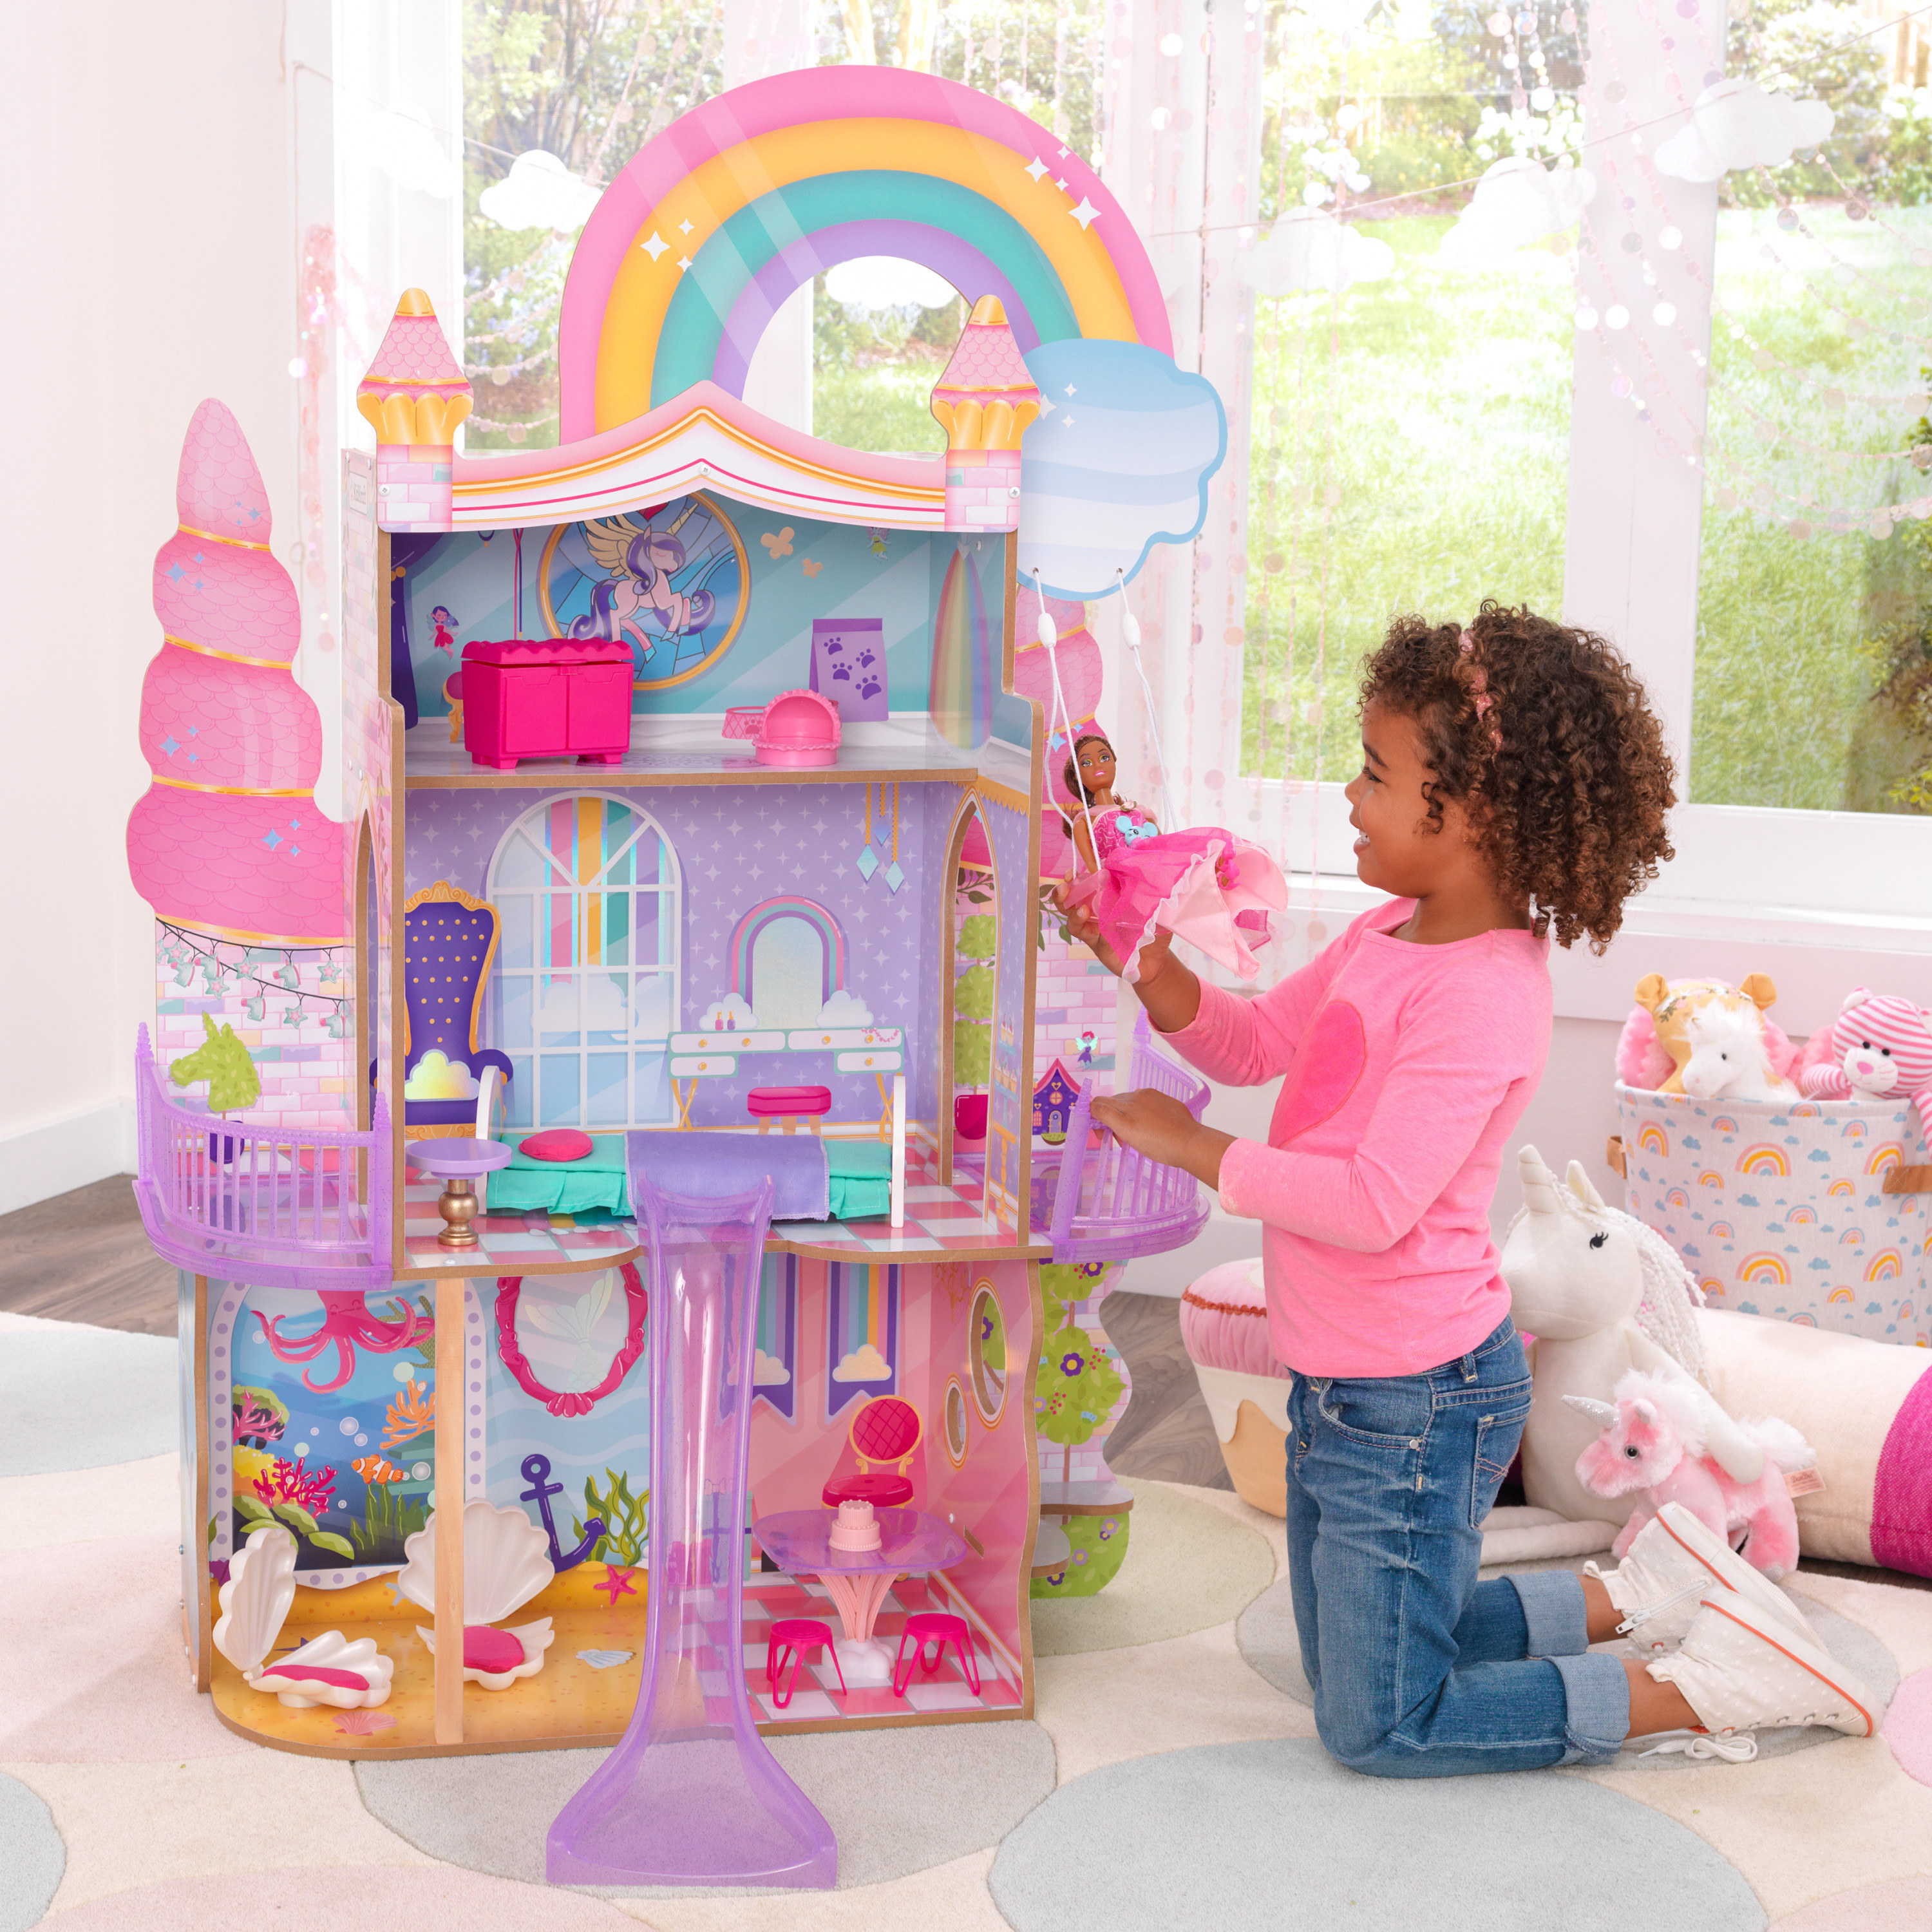 A model playing with the rainbow unicorn mermaid wooden dollhouse